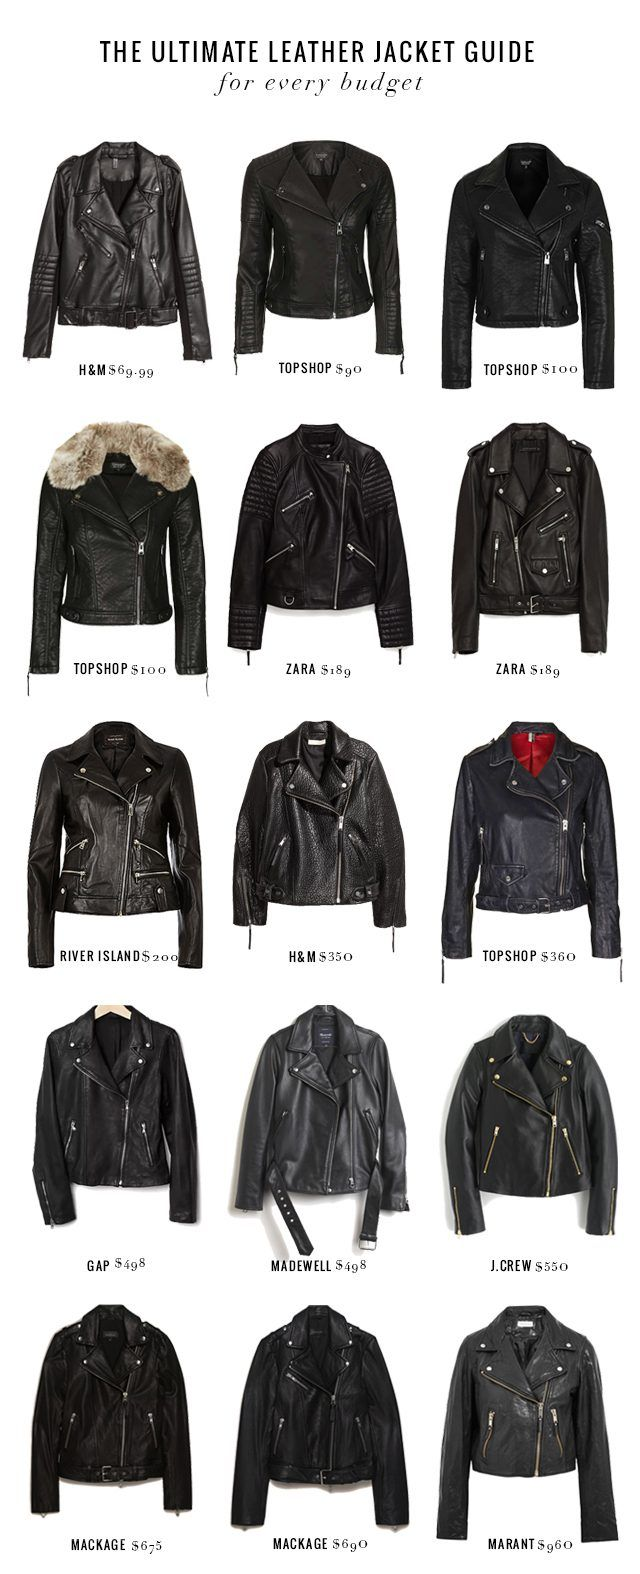 15 Leather Jackets at Every Price Point   eHow